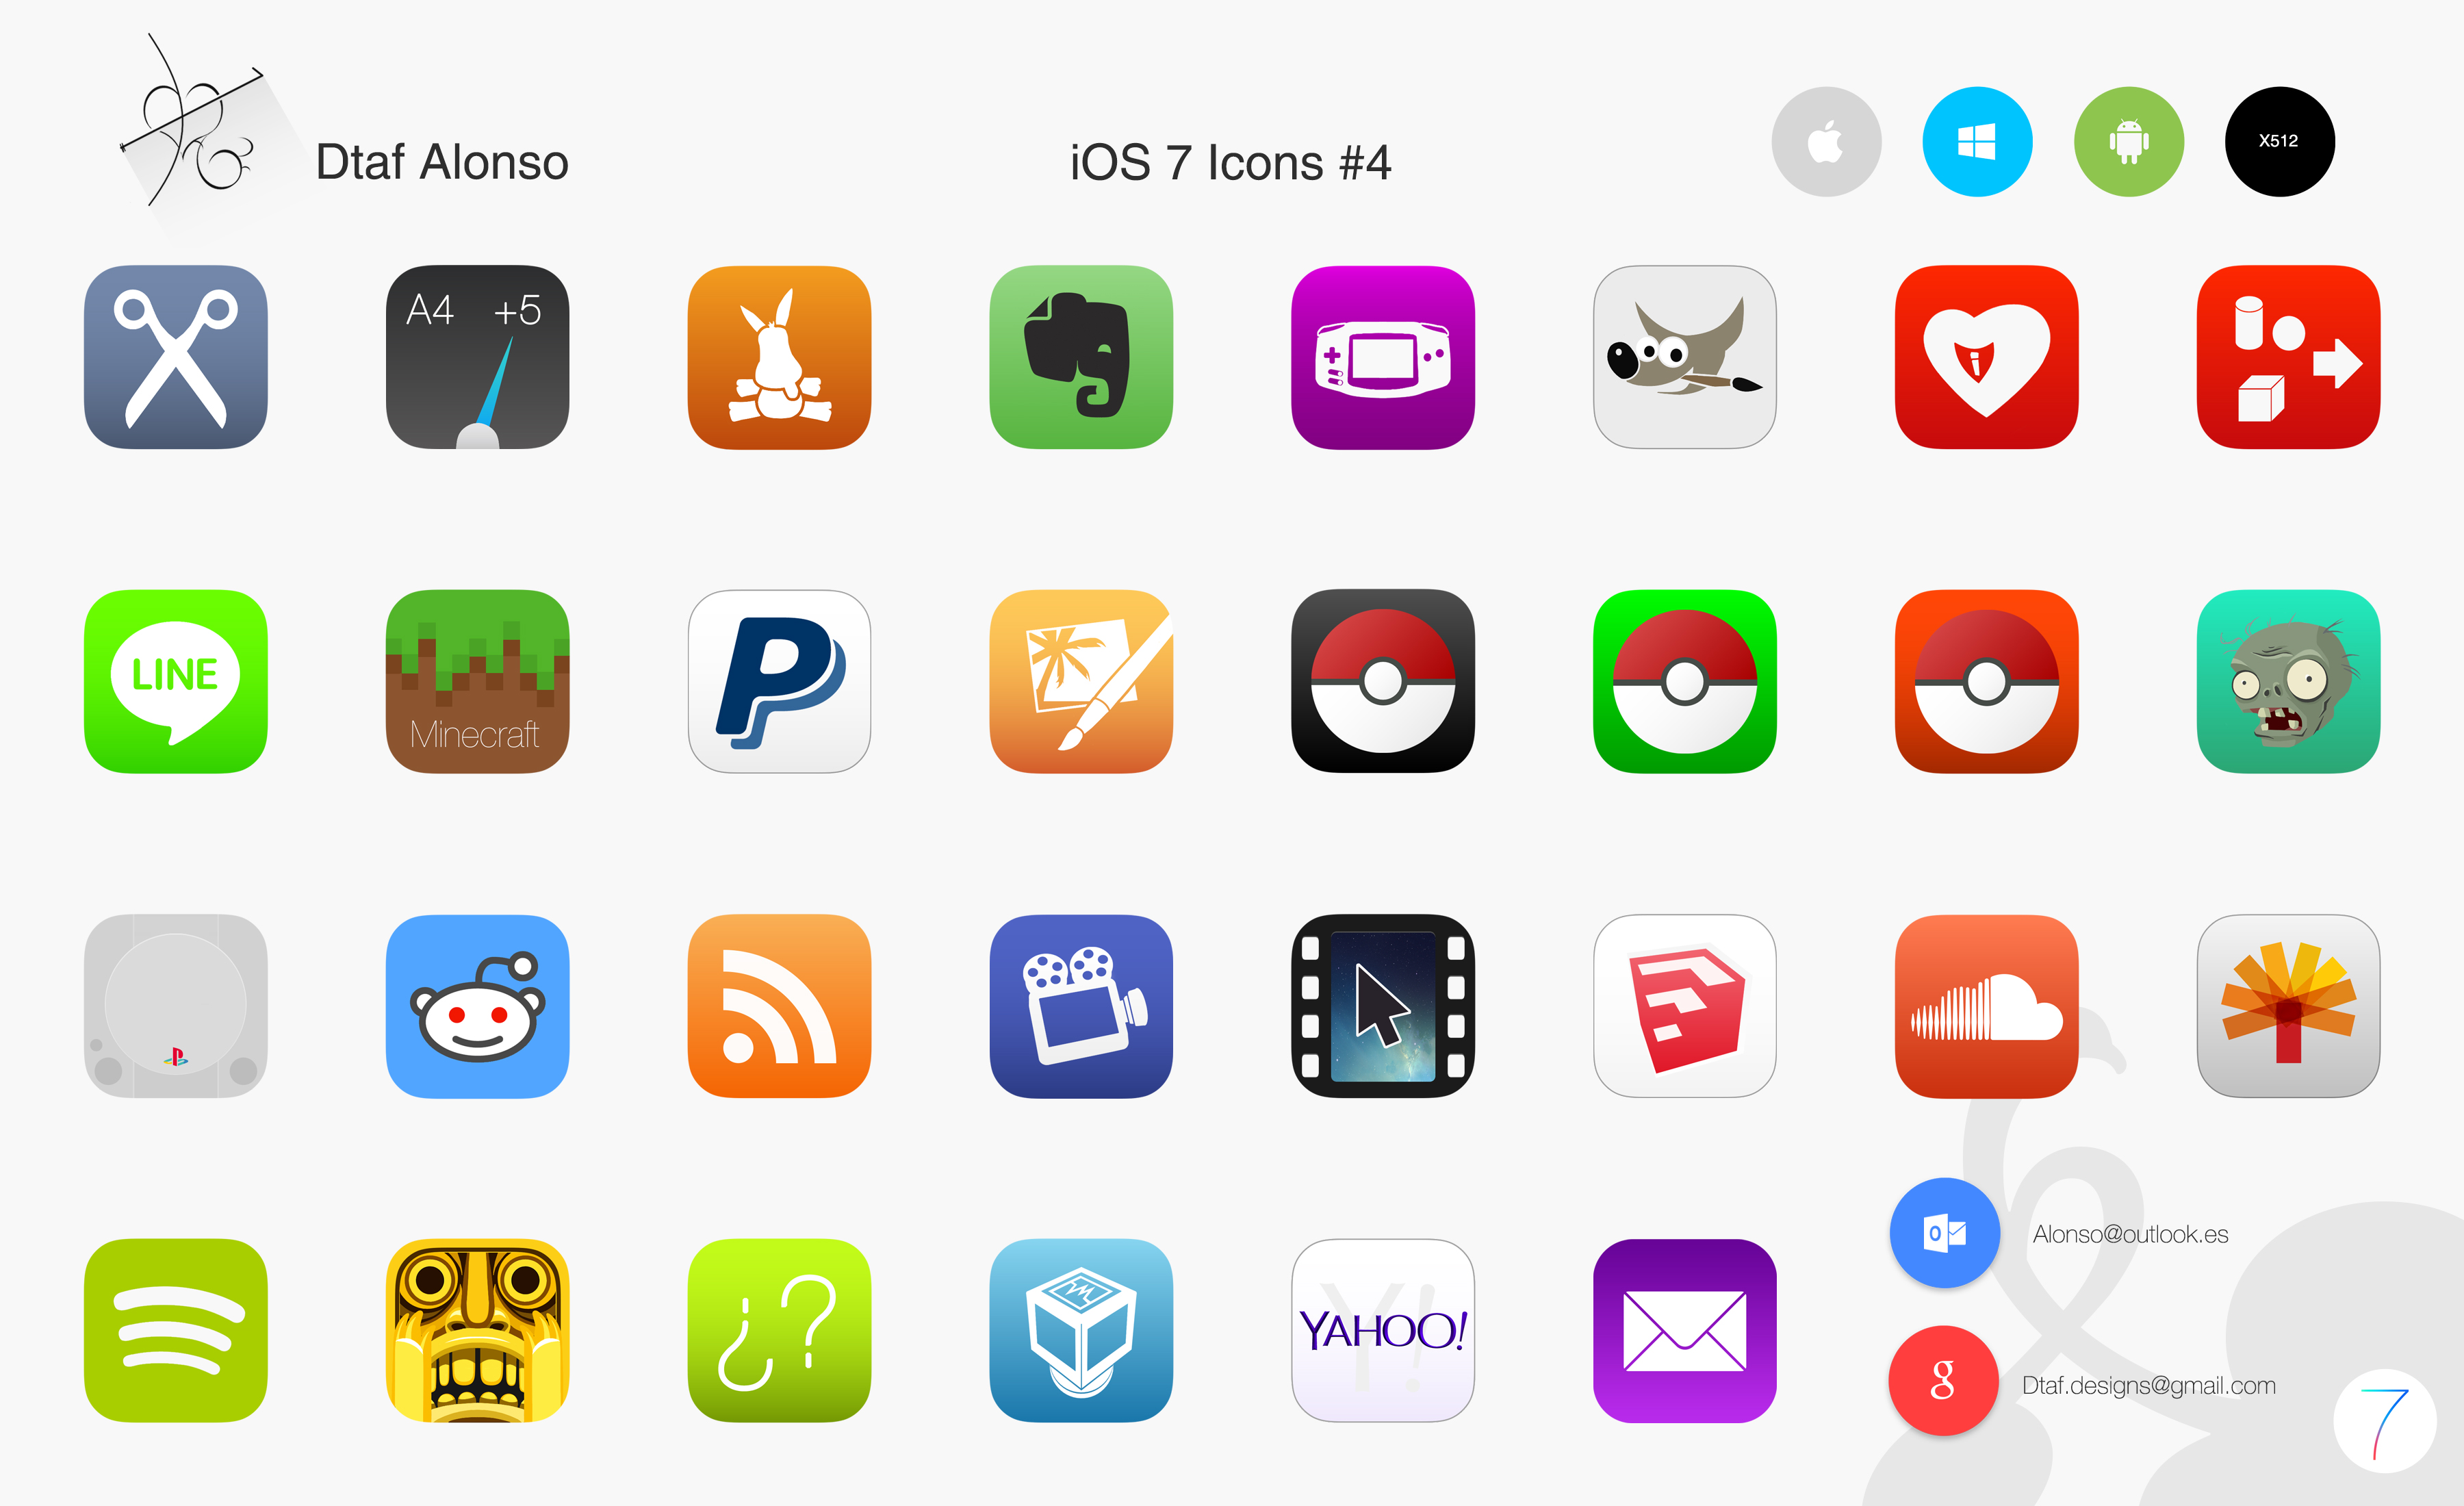 iOS 7 Icons #4 by dtafalonso